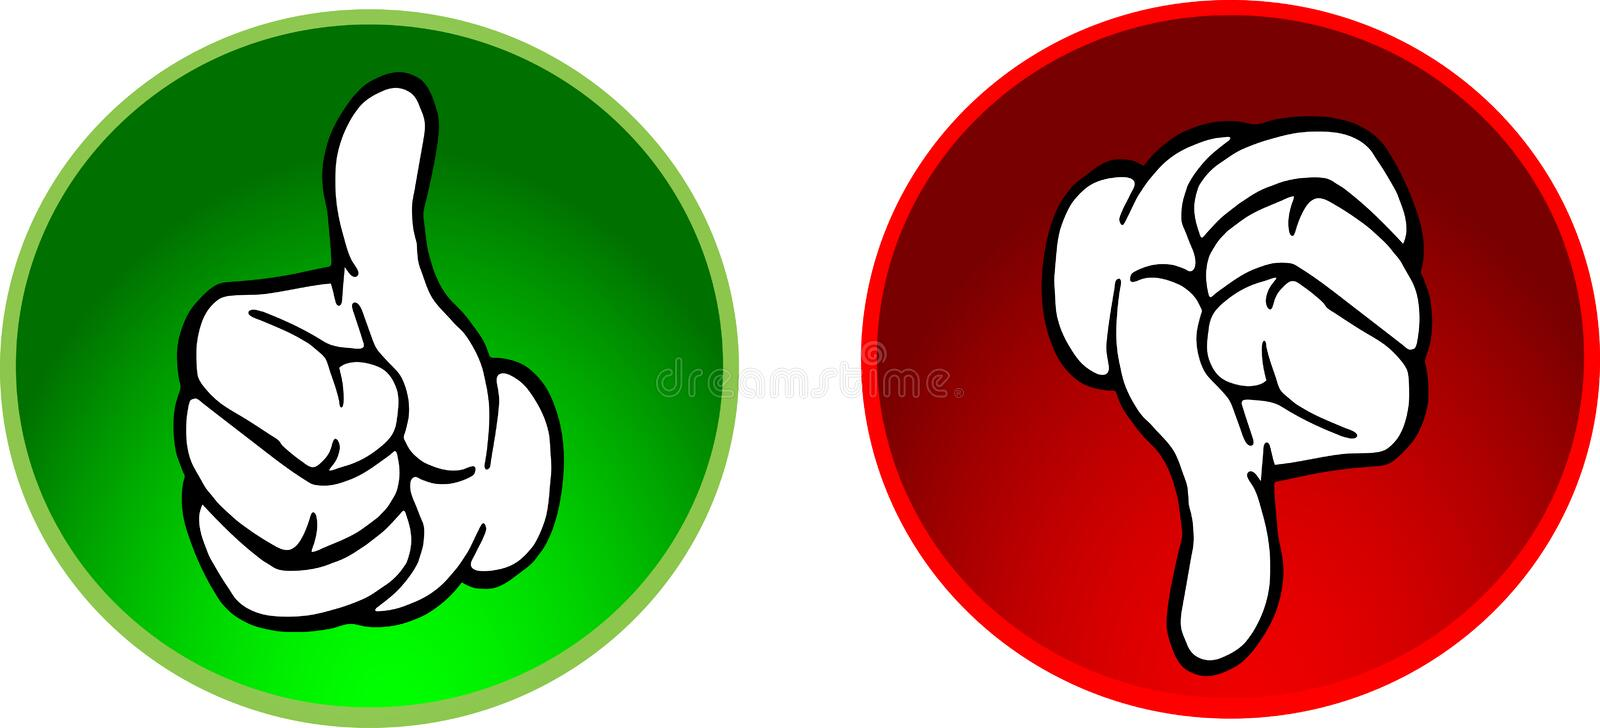 Thumbs up & down buttons vector illustration